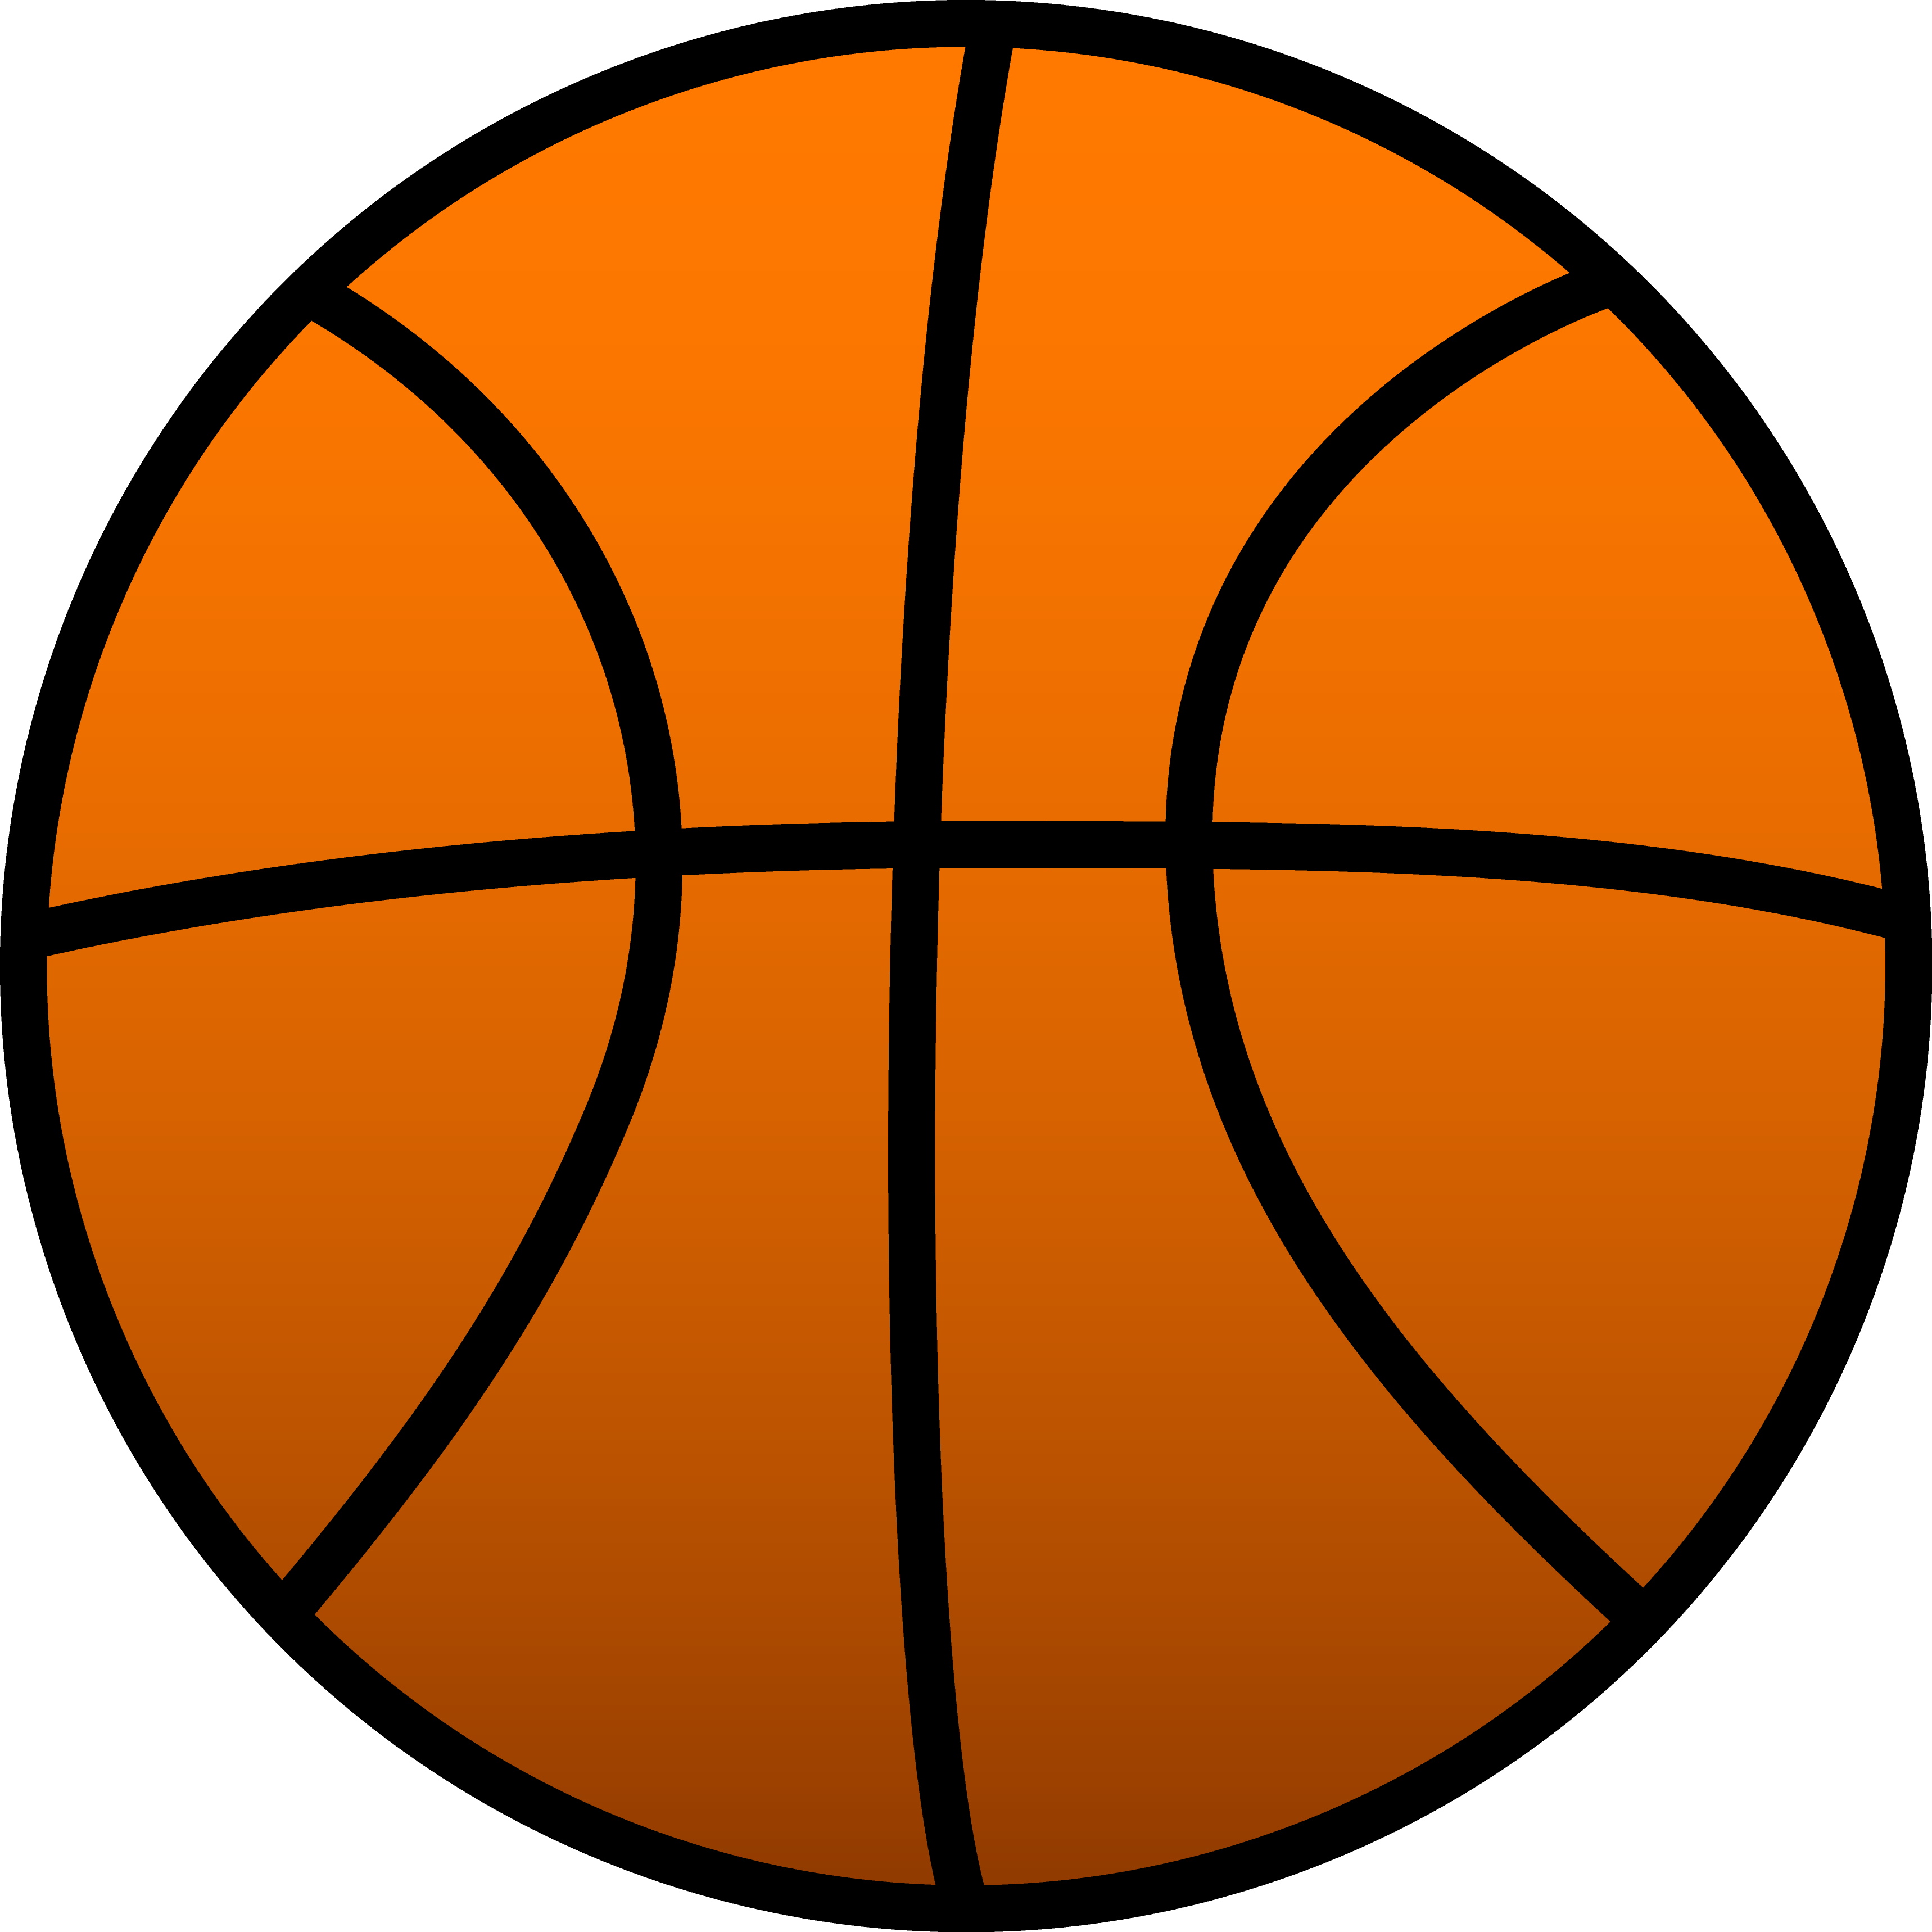 basketball hoop clip art | Hostted